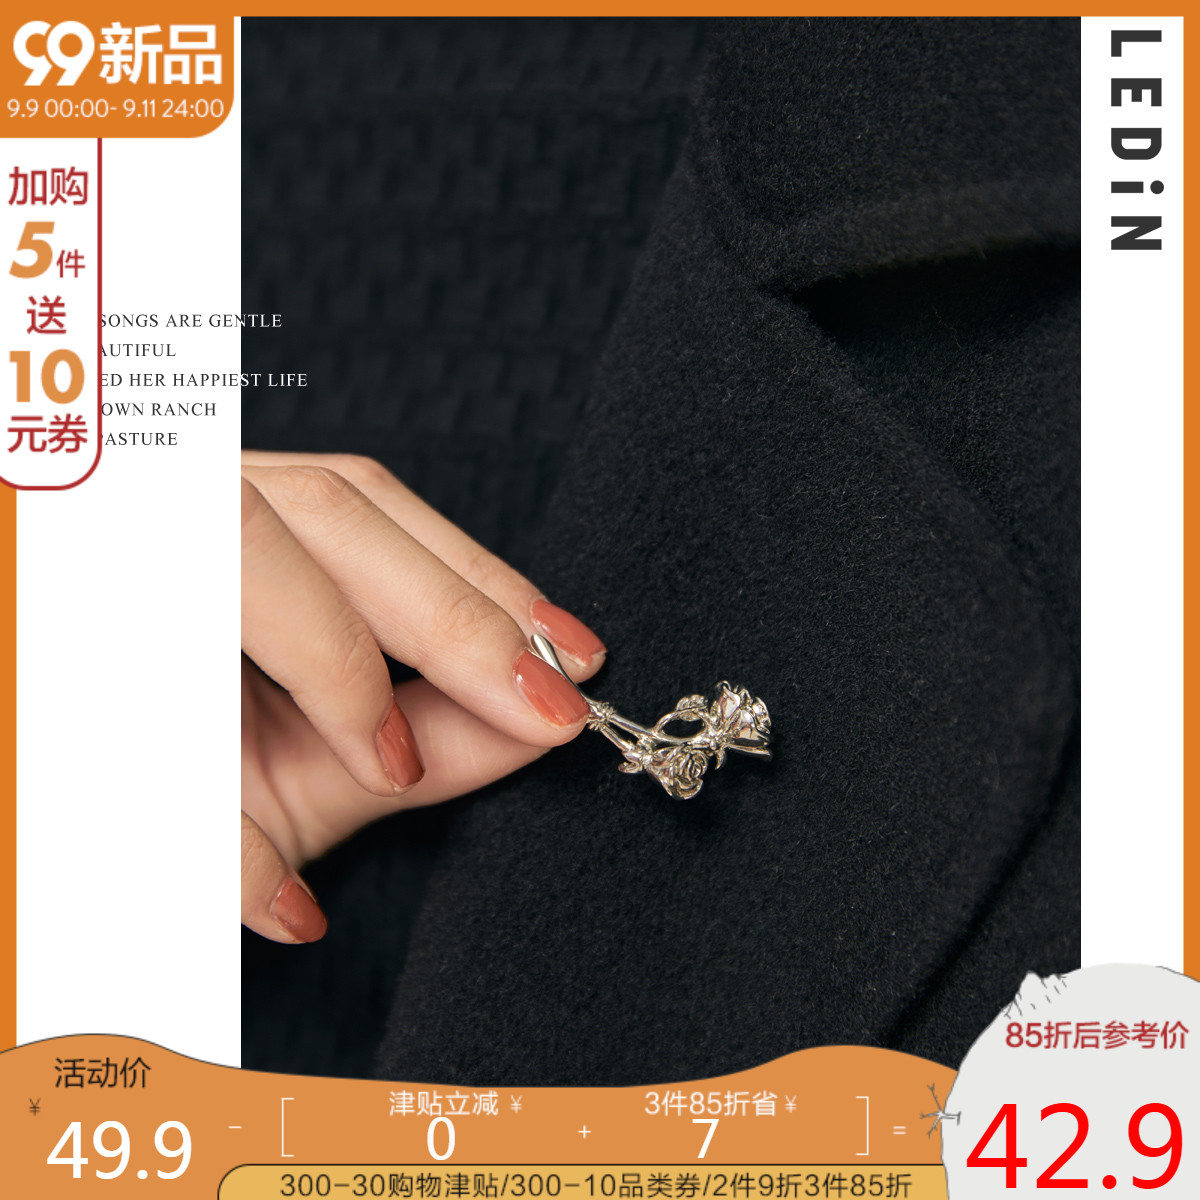 (New) Le Chi brooch elegant fashion accessories banquet luxury high-end womens pin silver rose brooch